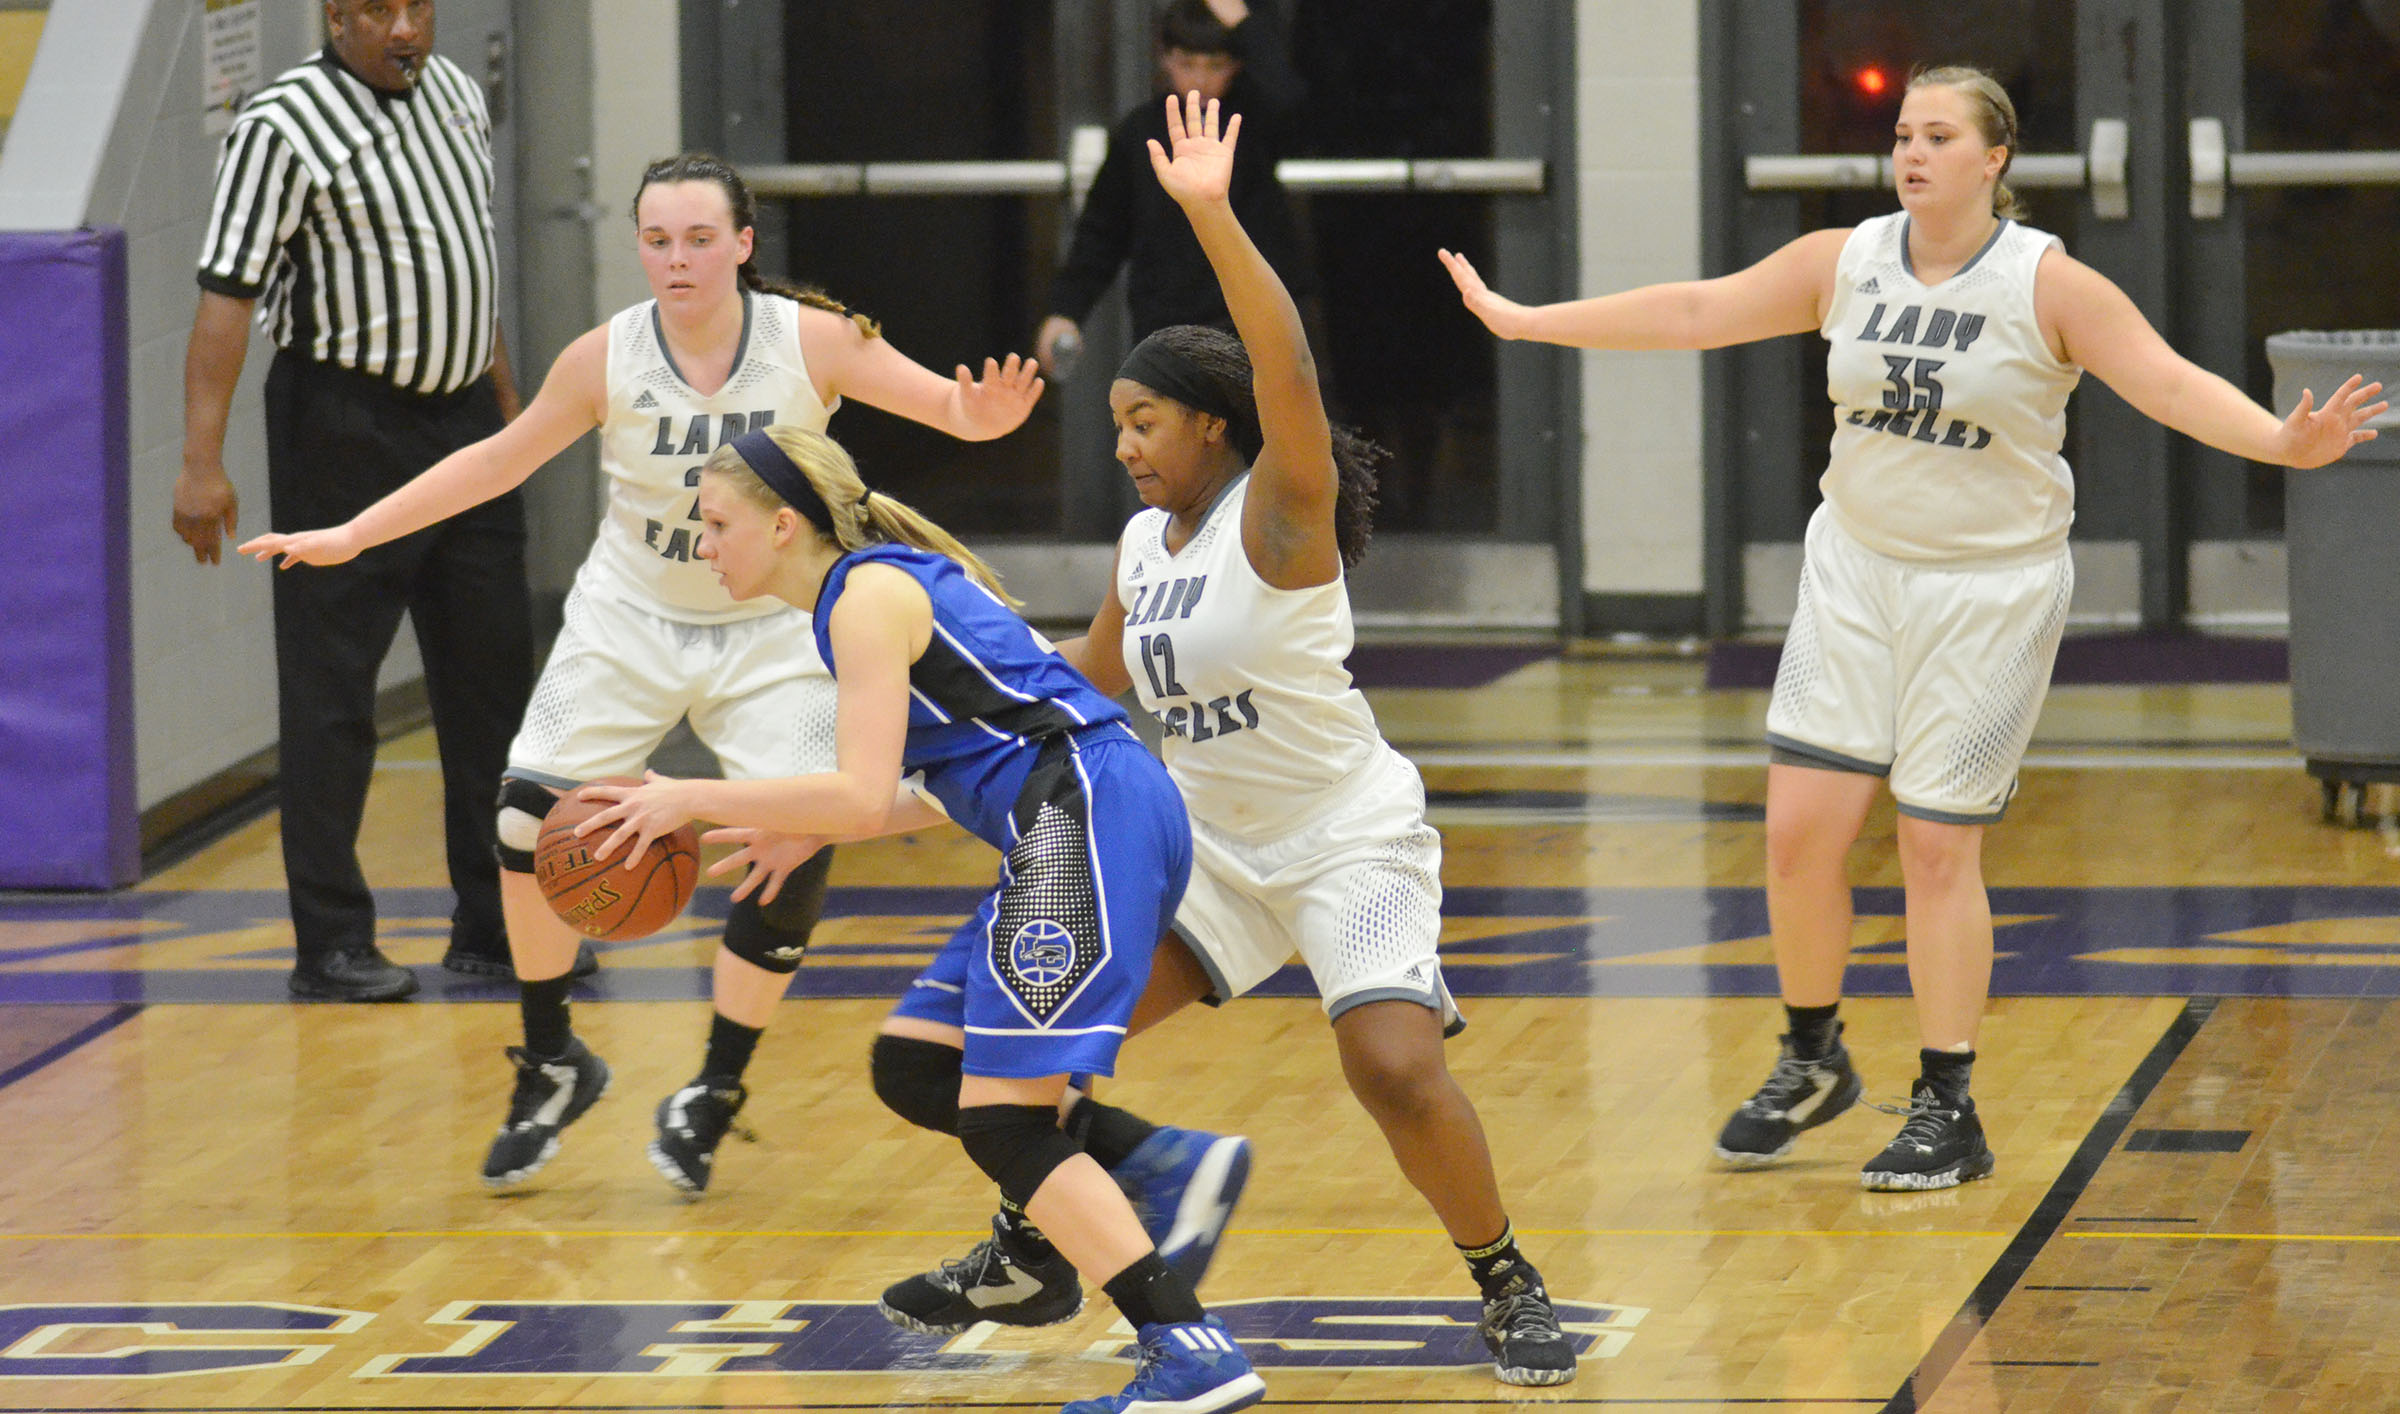 From left, CHS freshman Katelyn Miller, junior Kiyah Barnett and senior Brenna Wethington play defense.